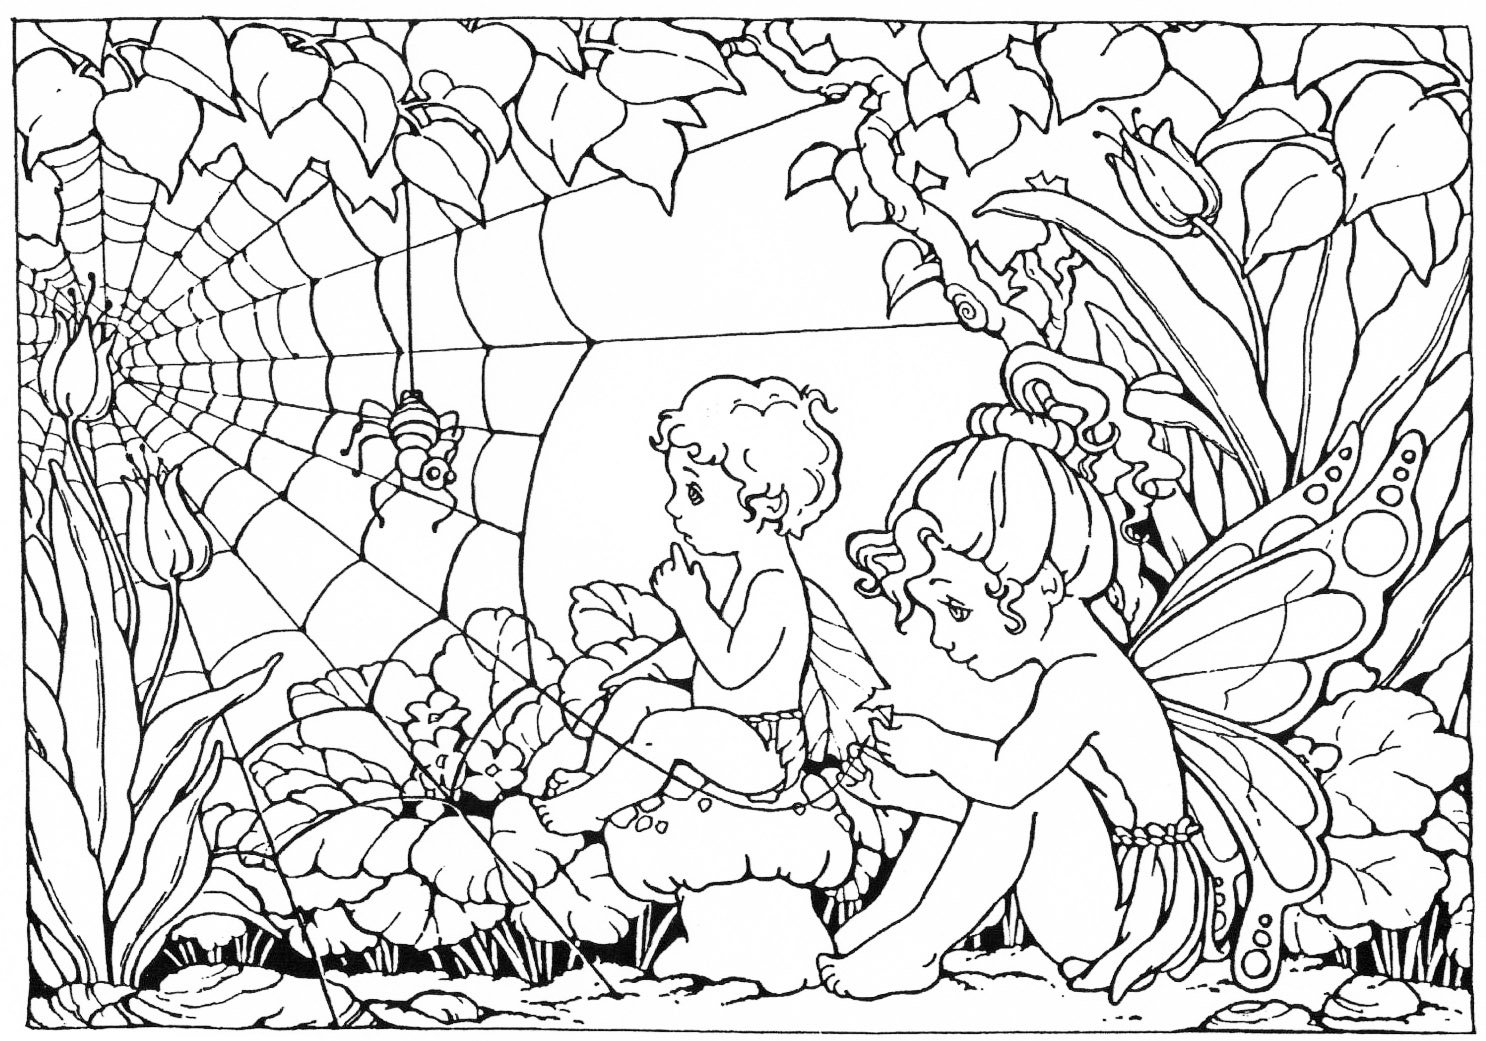 PRINT AND COLOUR FAIRY COLOURING PAGE